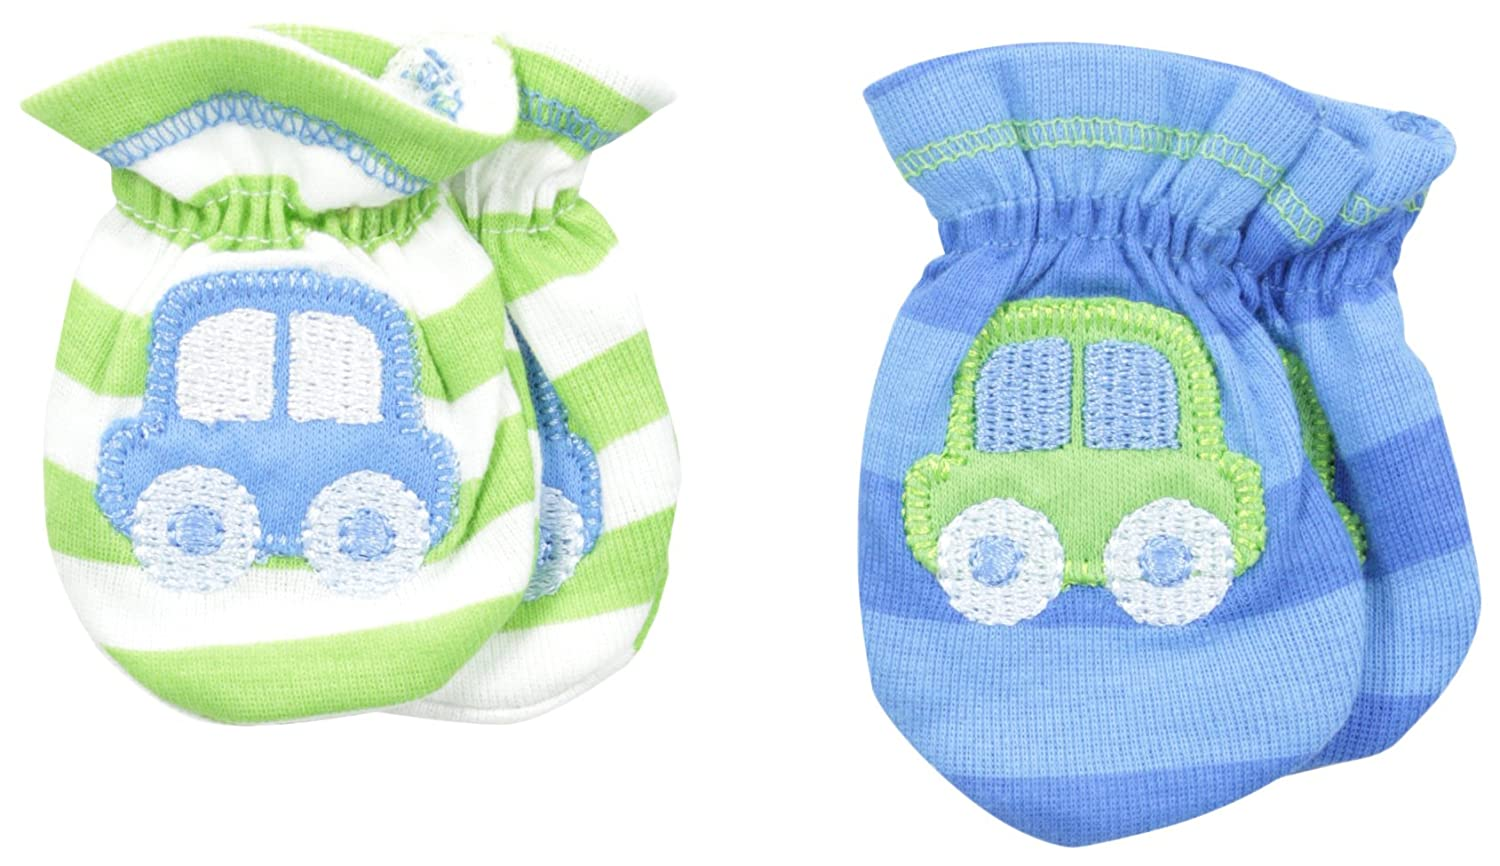 Gerber Baby Boys' Car-Themed 2 Pack Mittens Blue 0-3 Months Gerber Children' s Apparel 81857216AB1503I